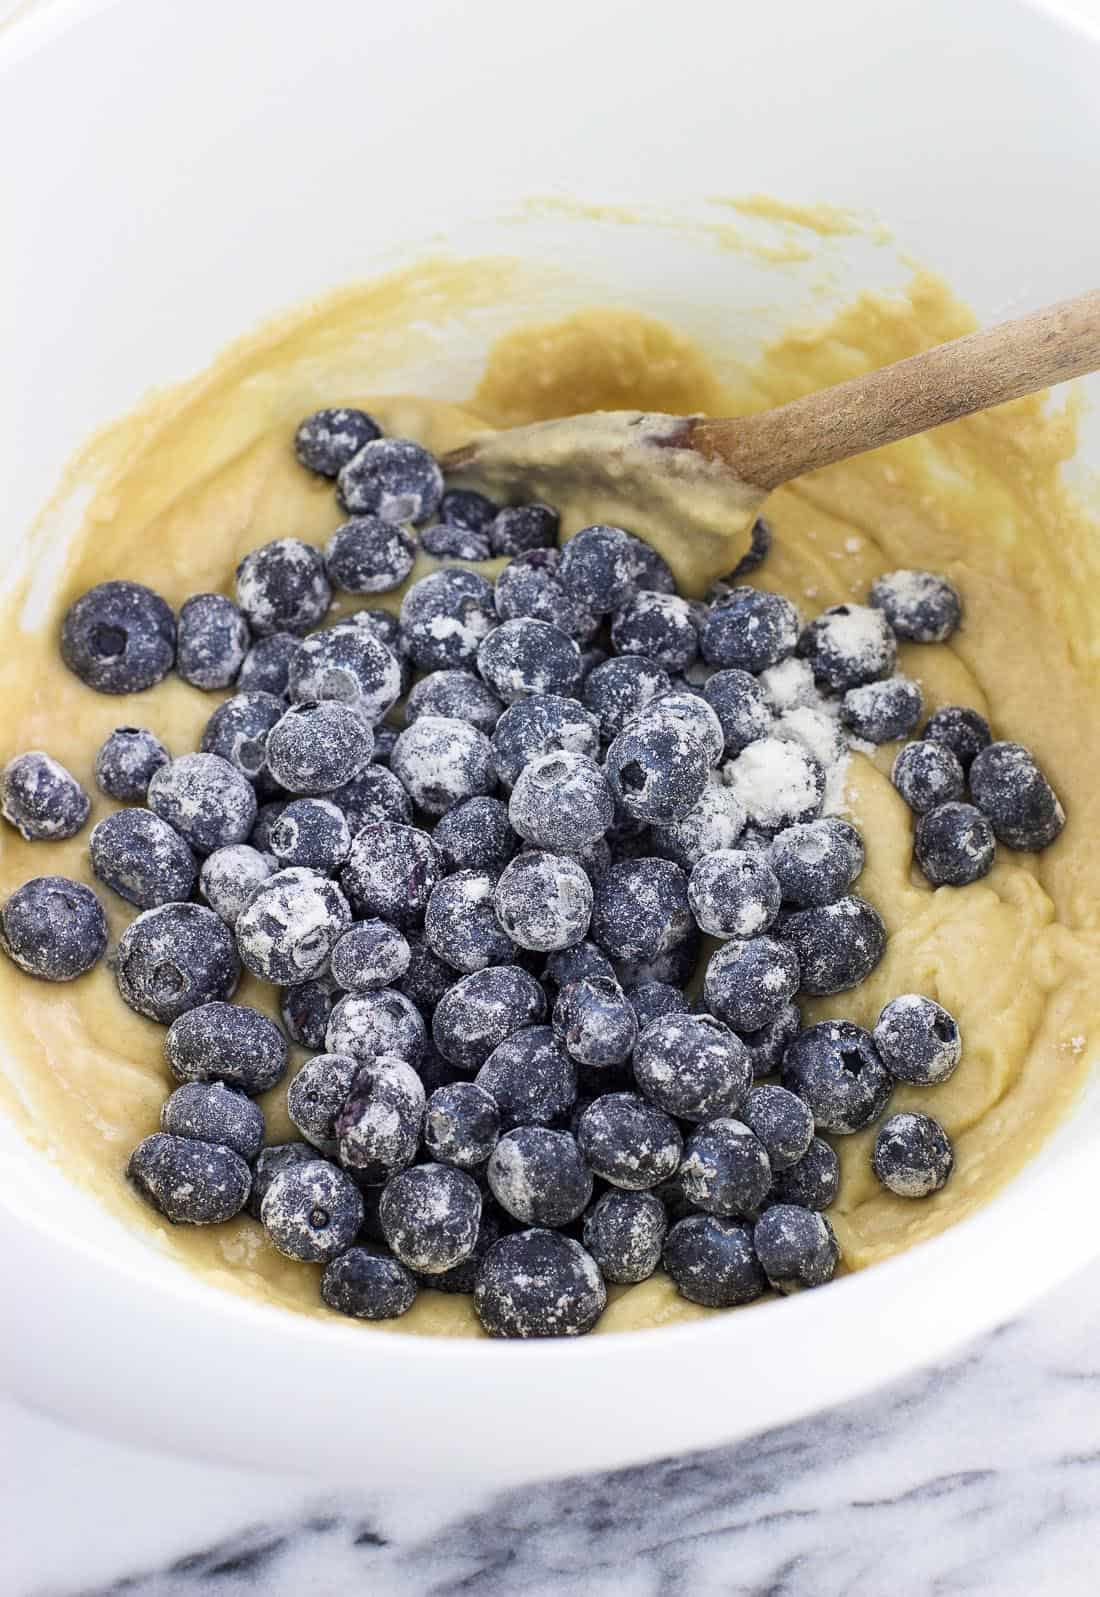 Flour-dusted fresh blueberries poured on top of muffin batter in a mixing bowl